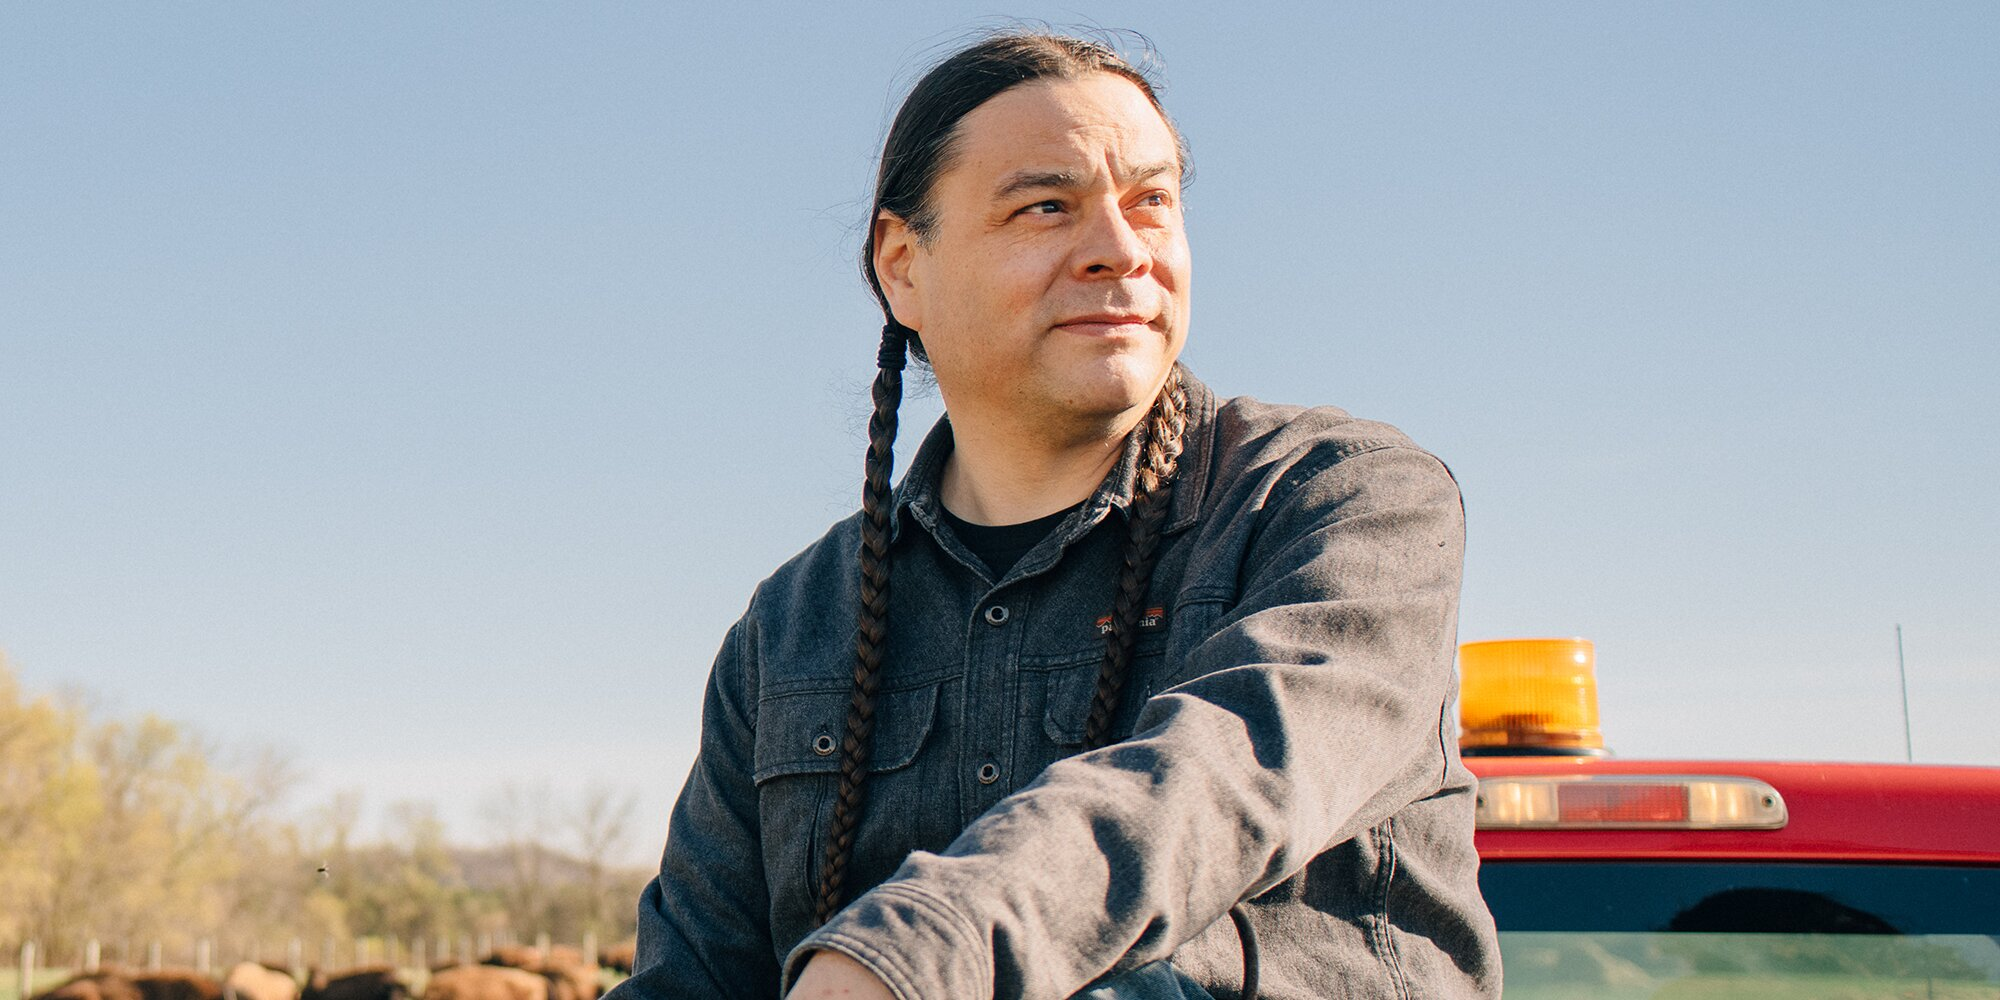 Meet Sean Sherman-the Sioux Chef Making Healthy Indigenous Food Accessible & Restoring Community Traditions